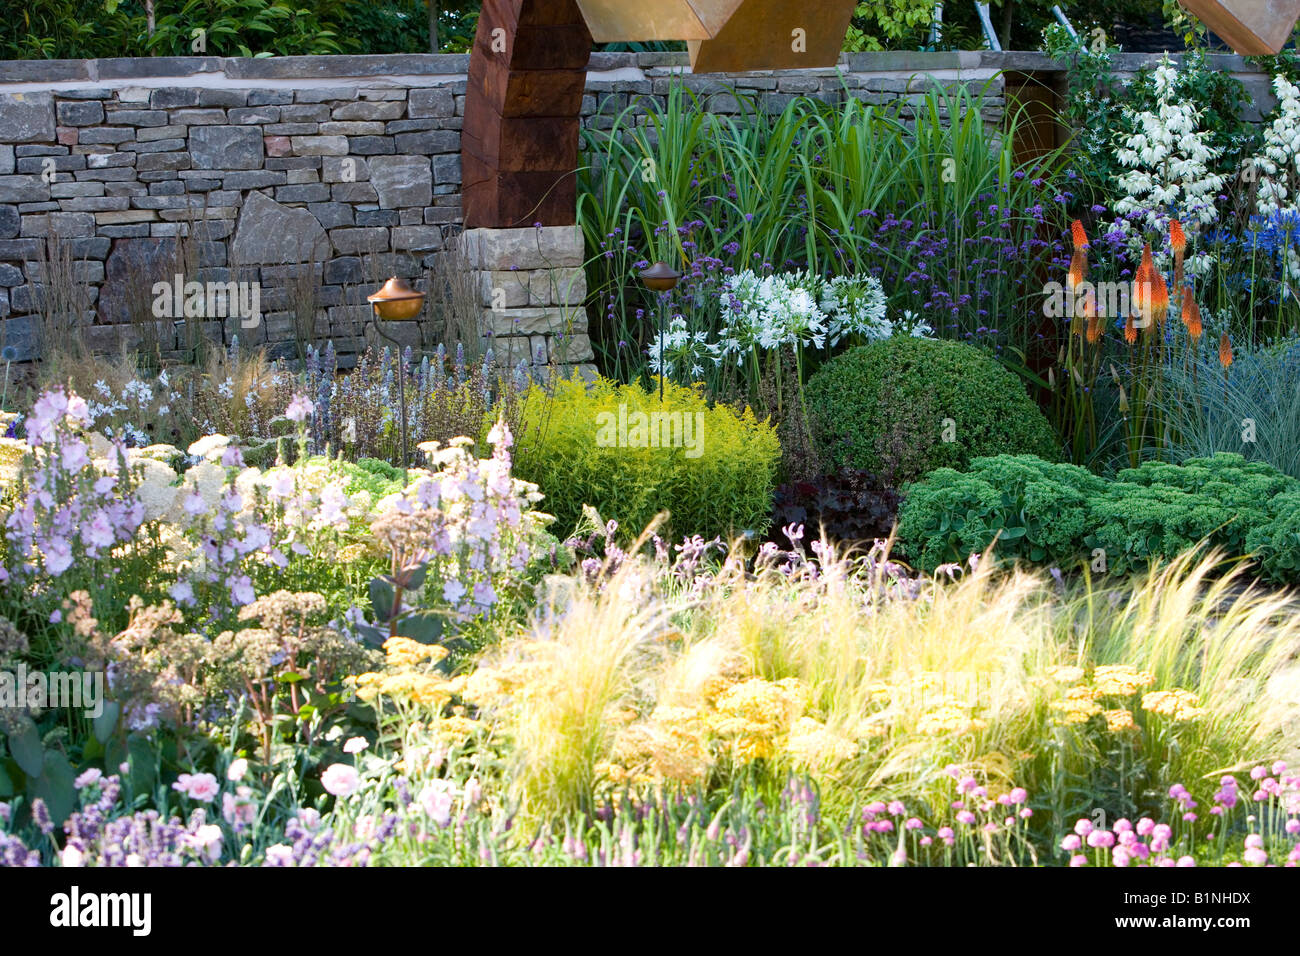 Mixed Planting In A Large Flower Bed Stock Photo 18299734 Alamy